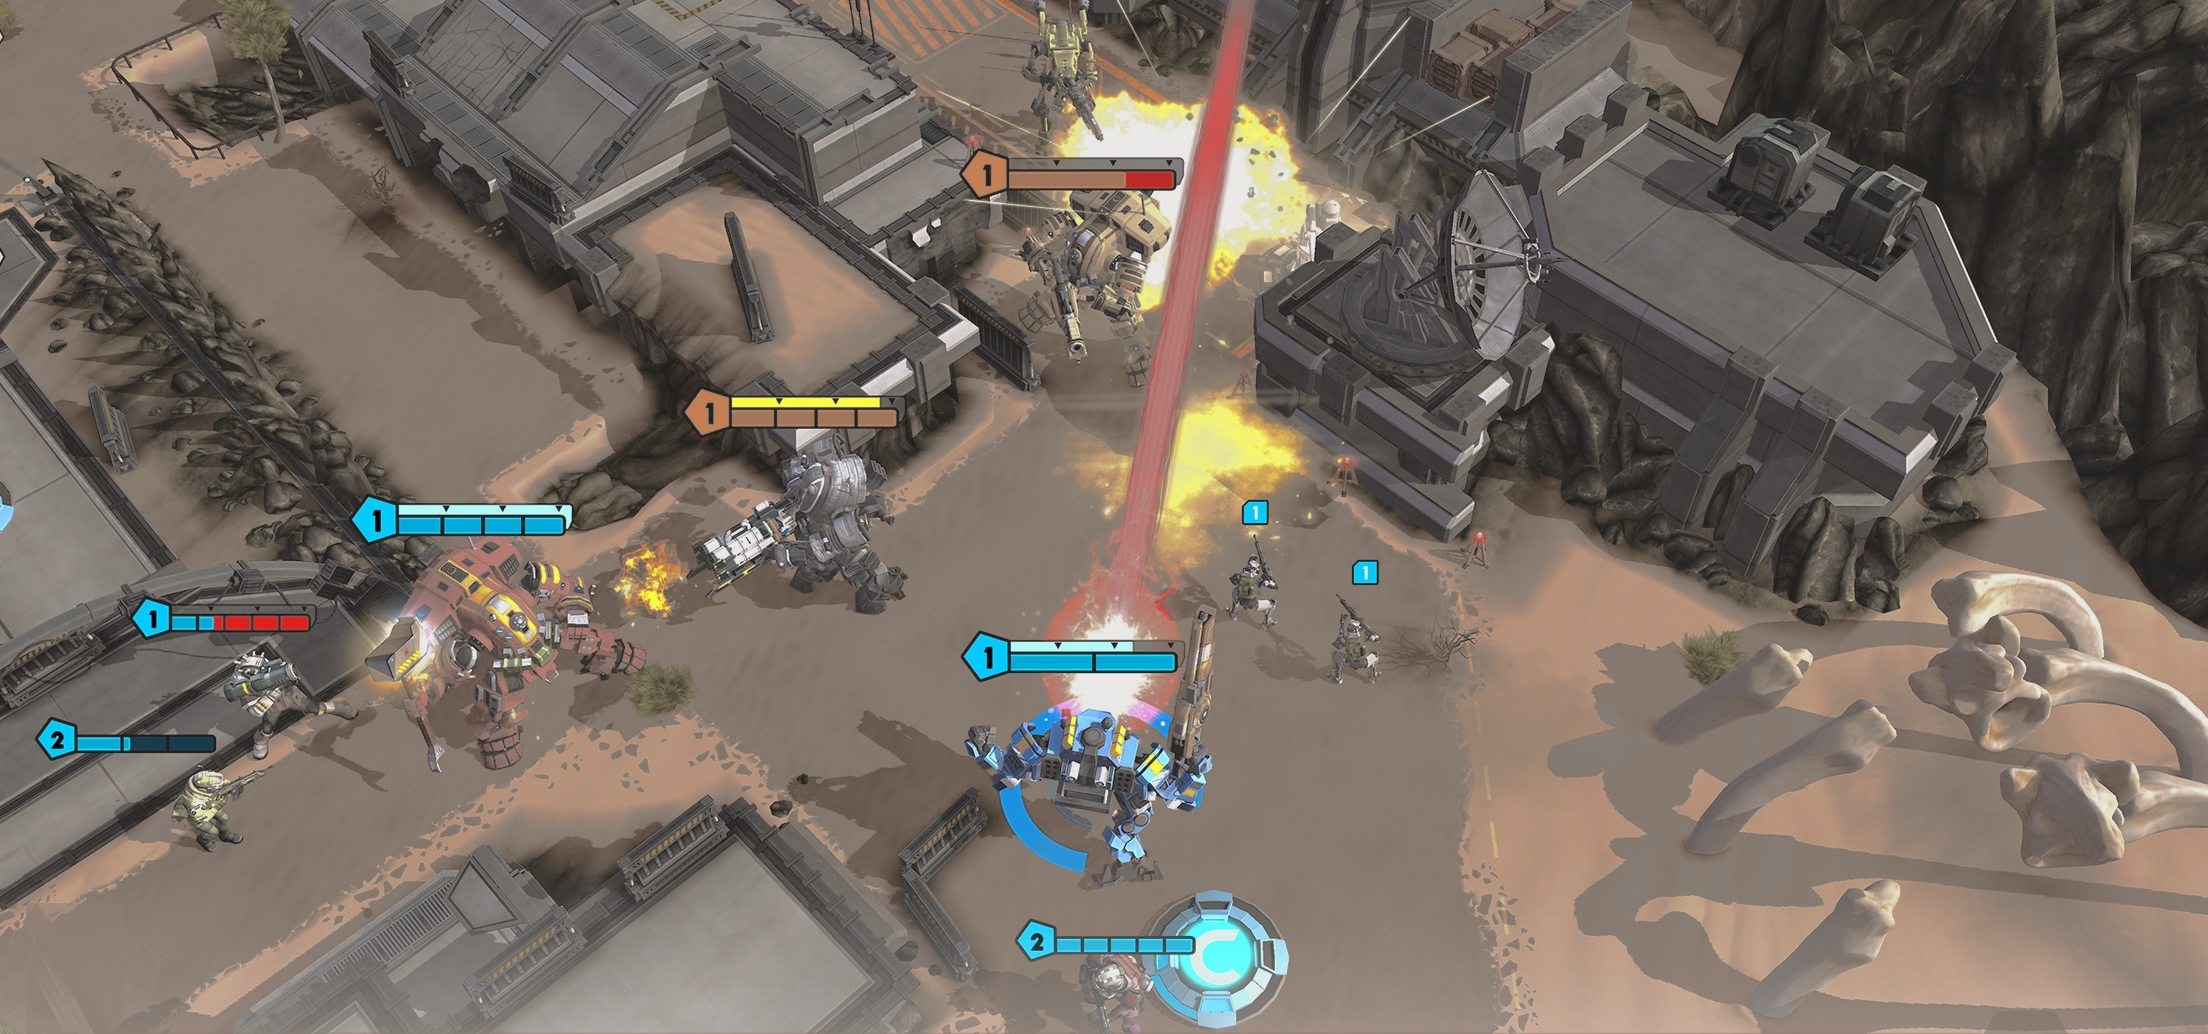 nexus2cee 123 - Titanfall: Assault 0.0727.35476 APK for Android